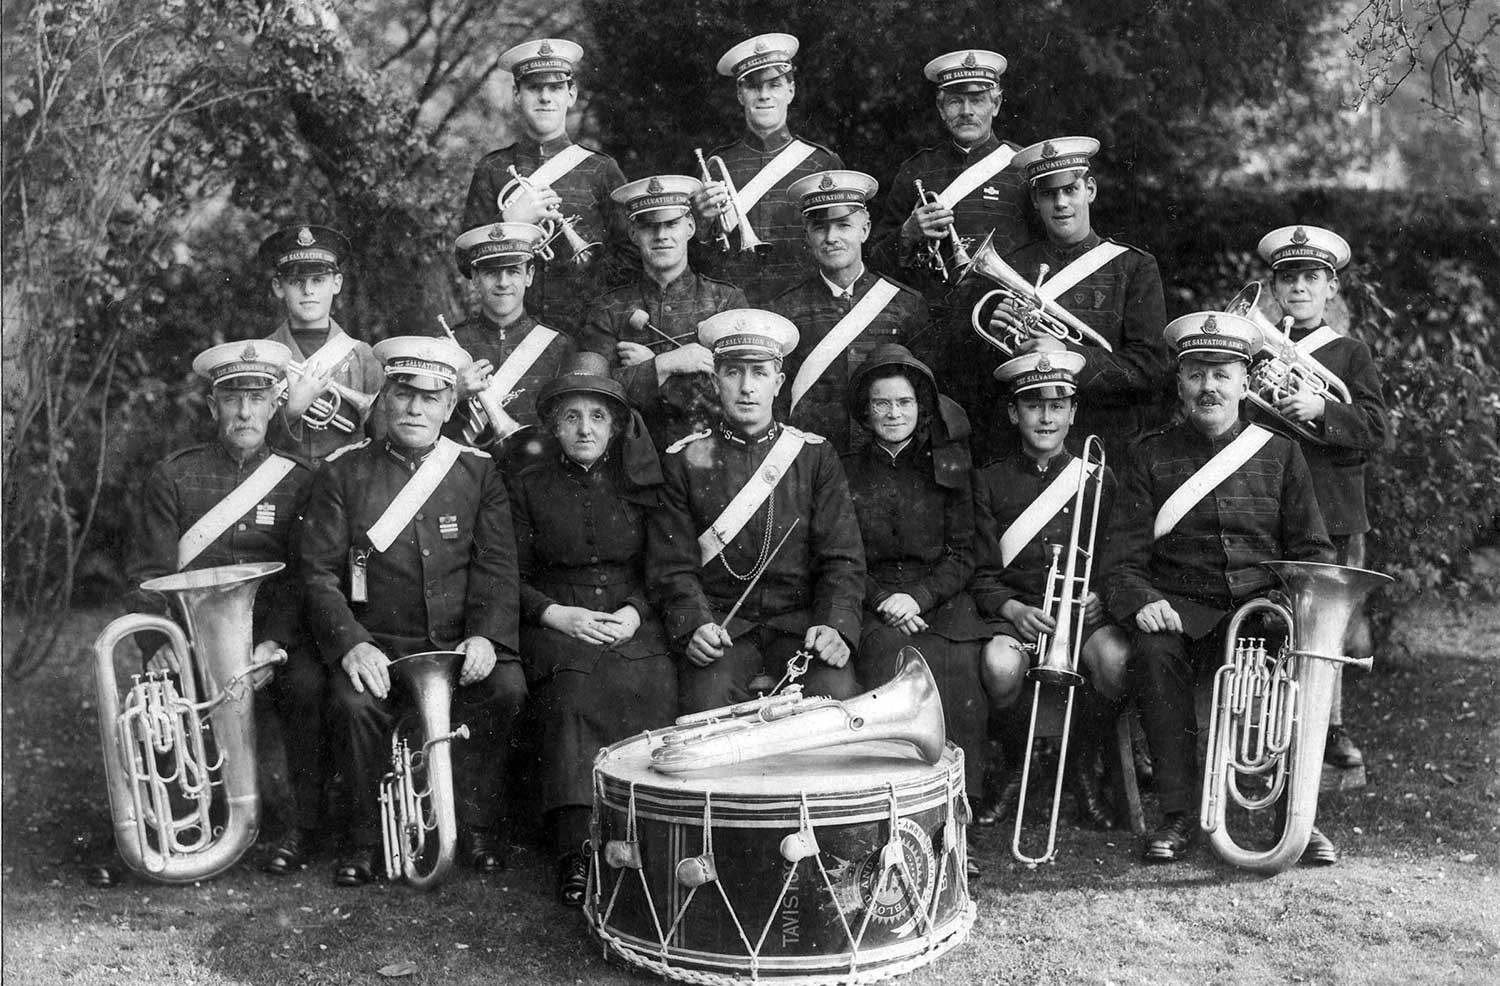 Tavistock Salvation Army Band, c. 1920